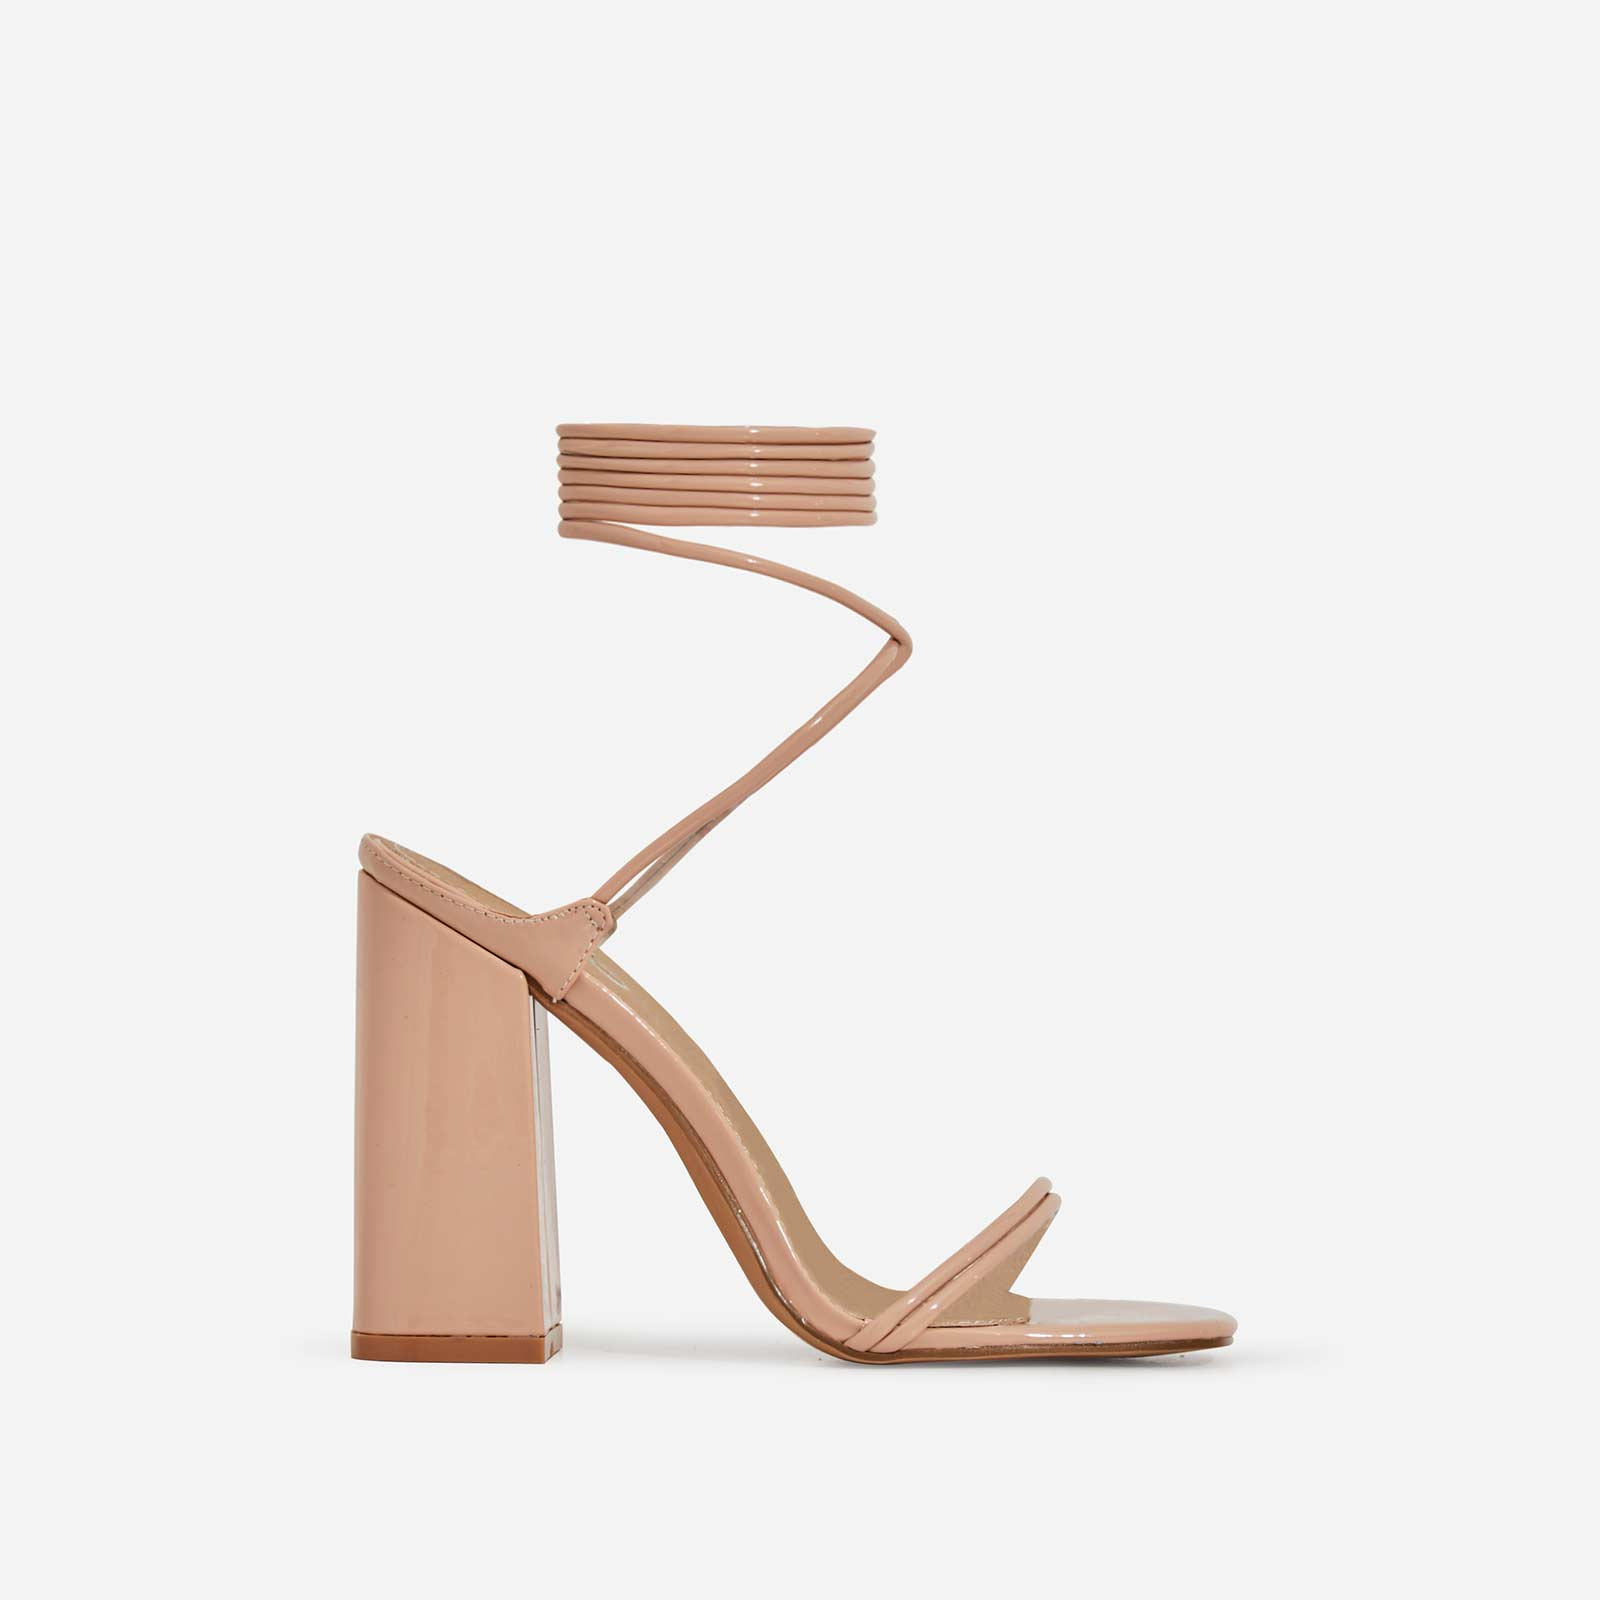 Leigh Lace Up Square Toe Block Heel In Nude Patent